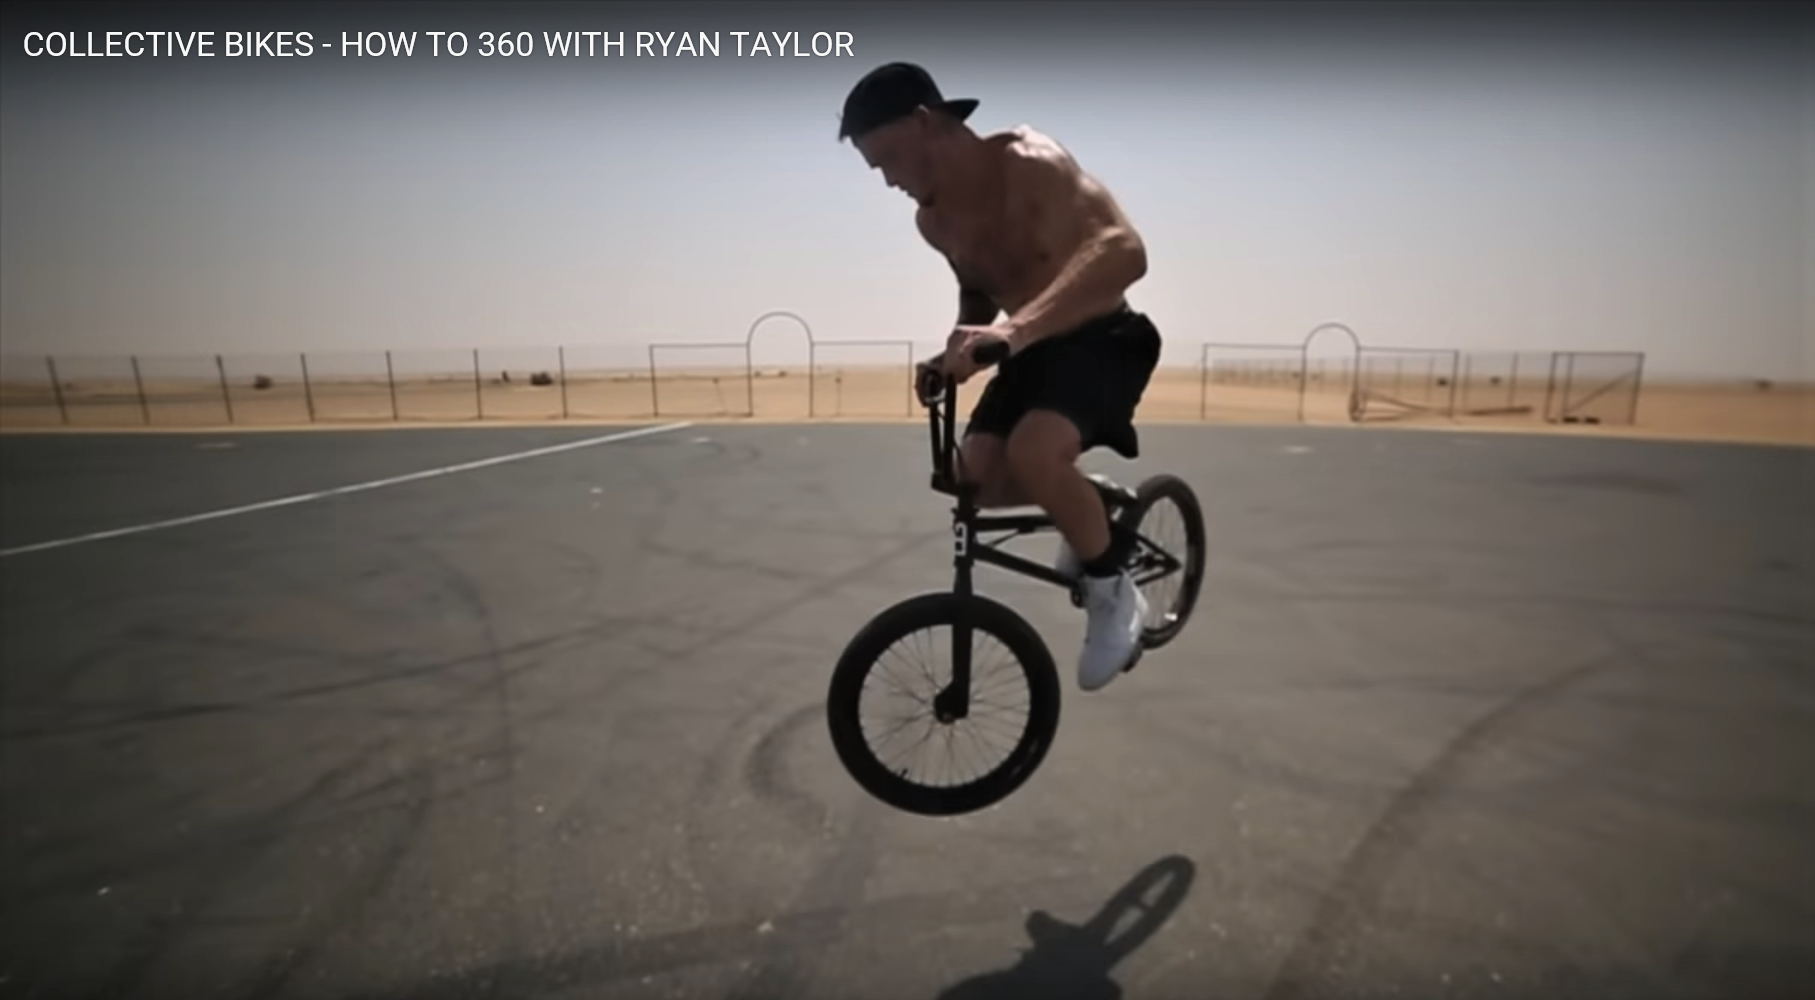 HOW TO 360 WITH RYAN TAYLOR - COLLECTIVE BIKES